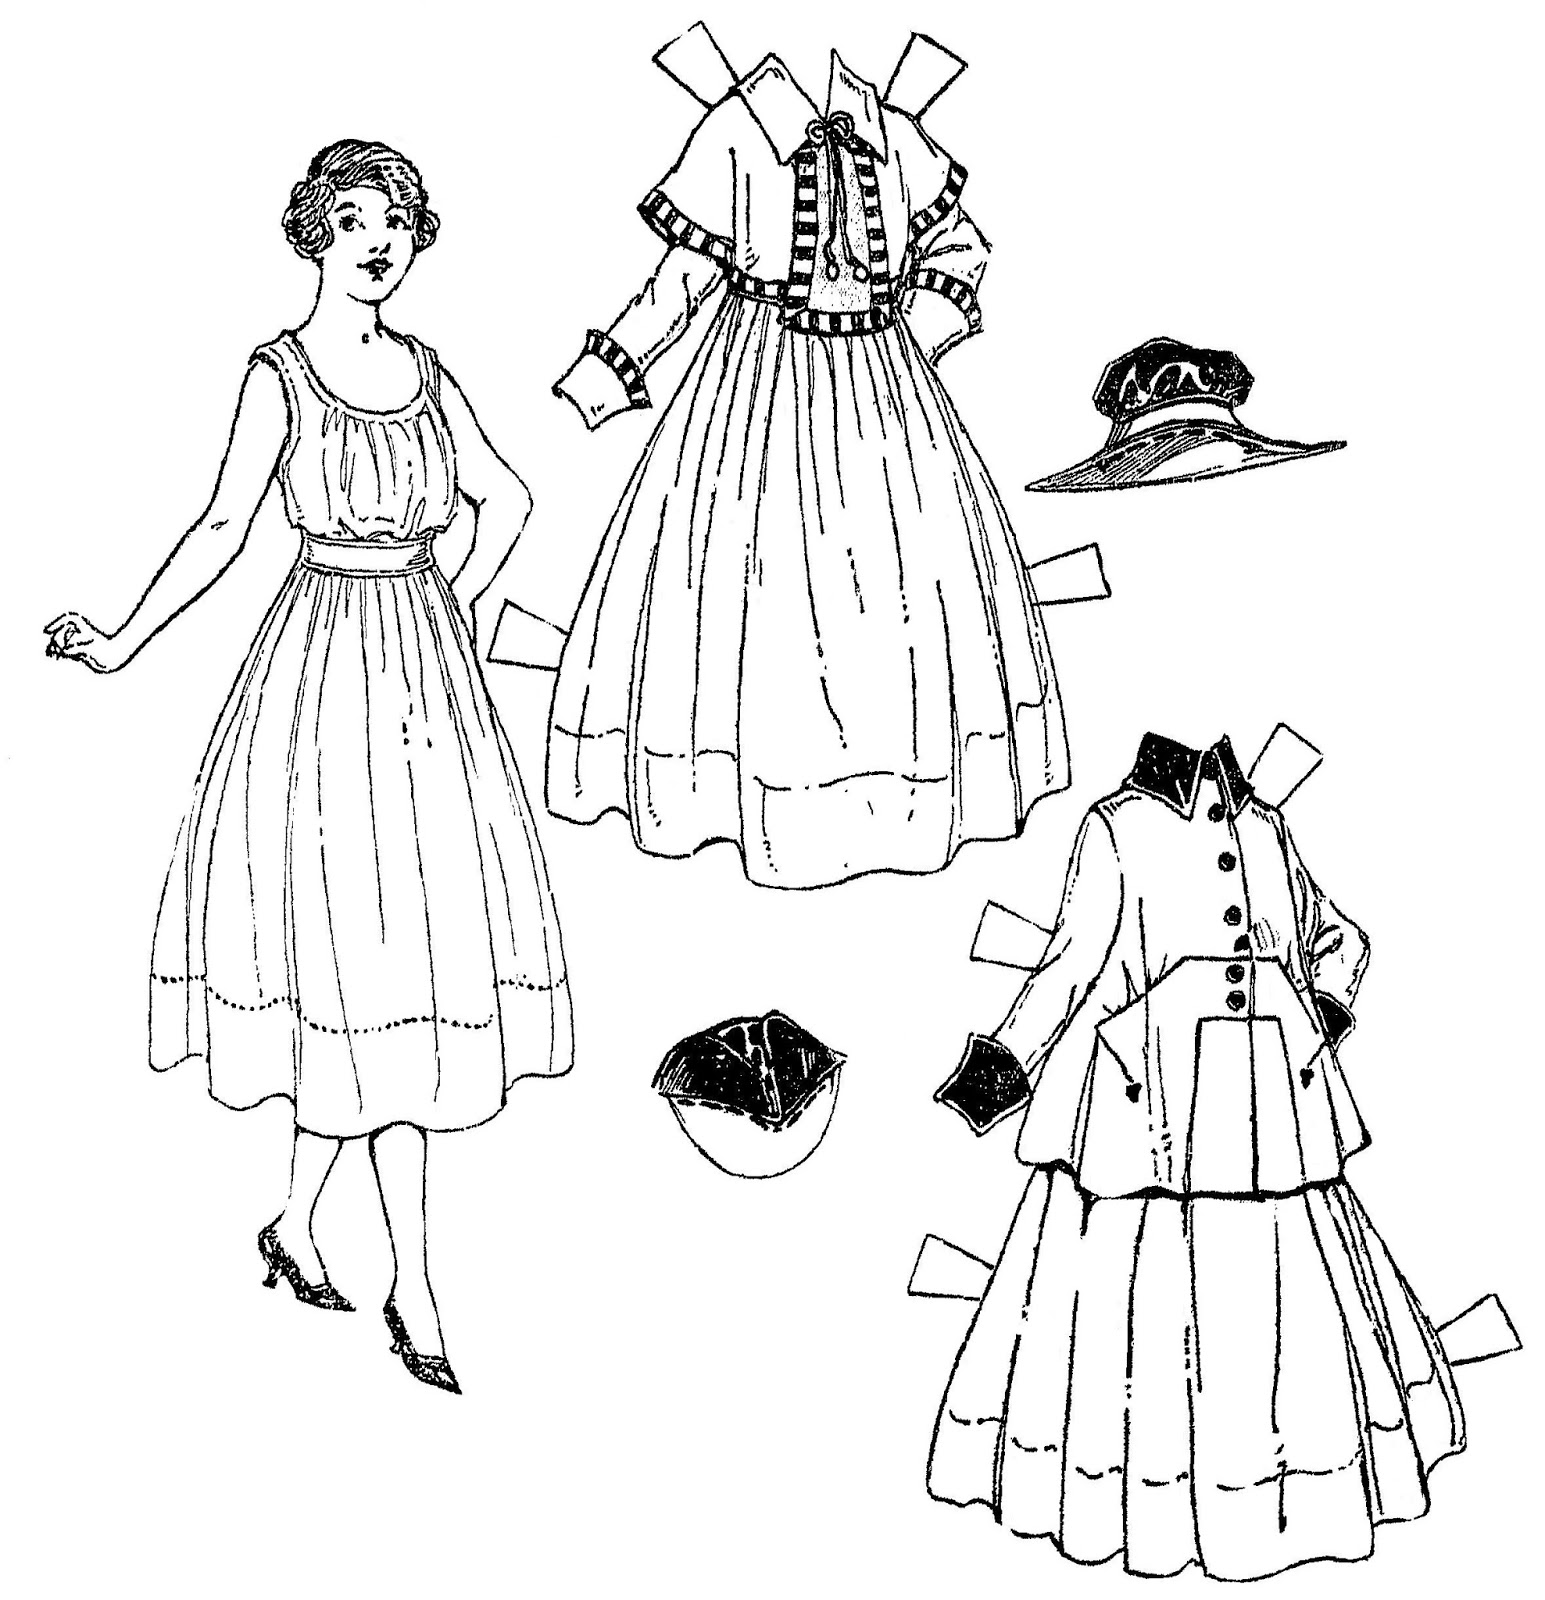 Mostly Paper Dolls Too!: A Pretty Lass and Her New Winter